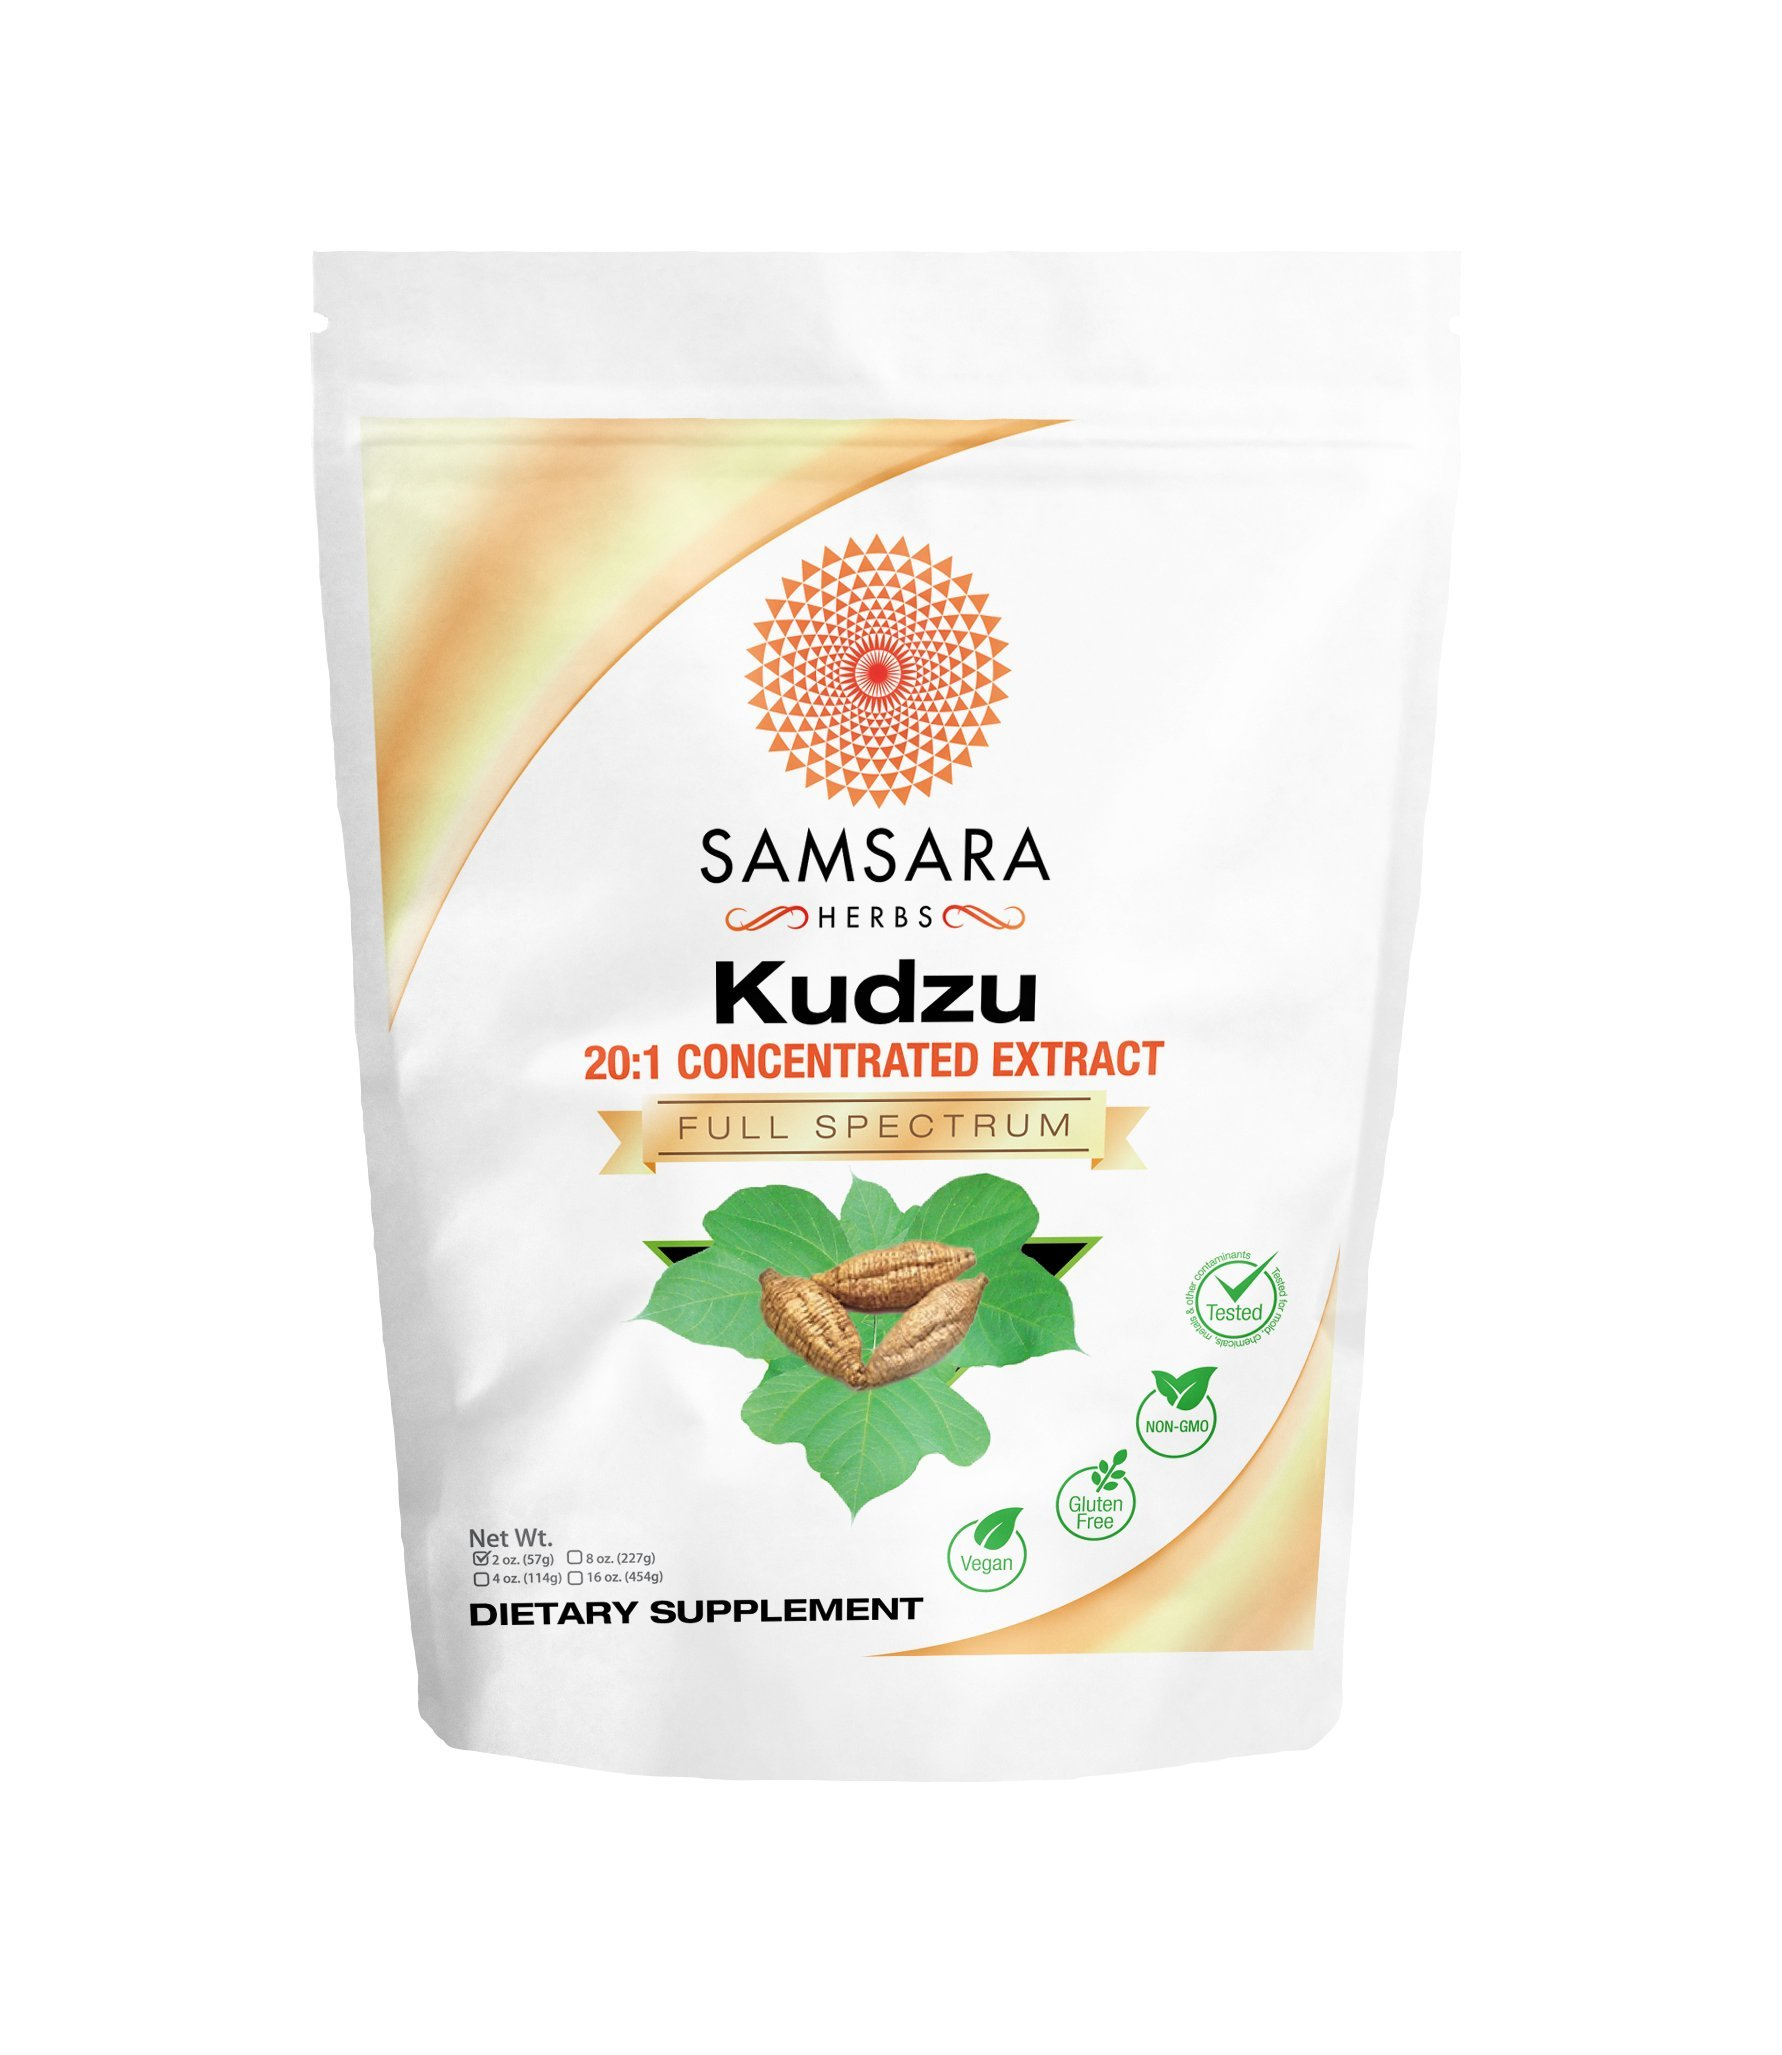 Kudzu Root Extract Powder (2oz / 57g) 20:1 Concentrated Extract